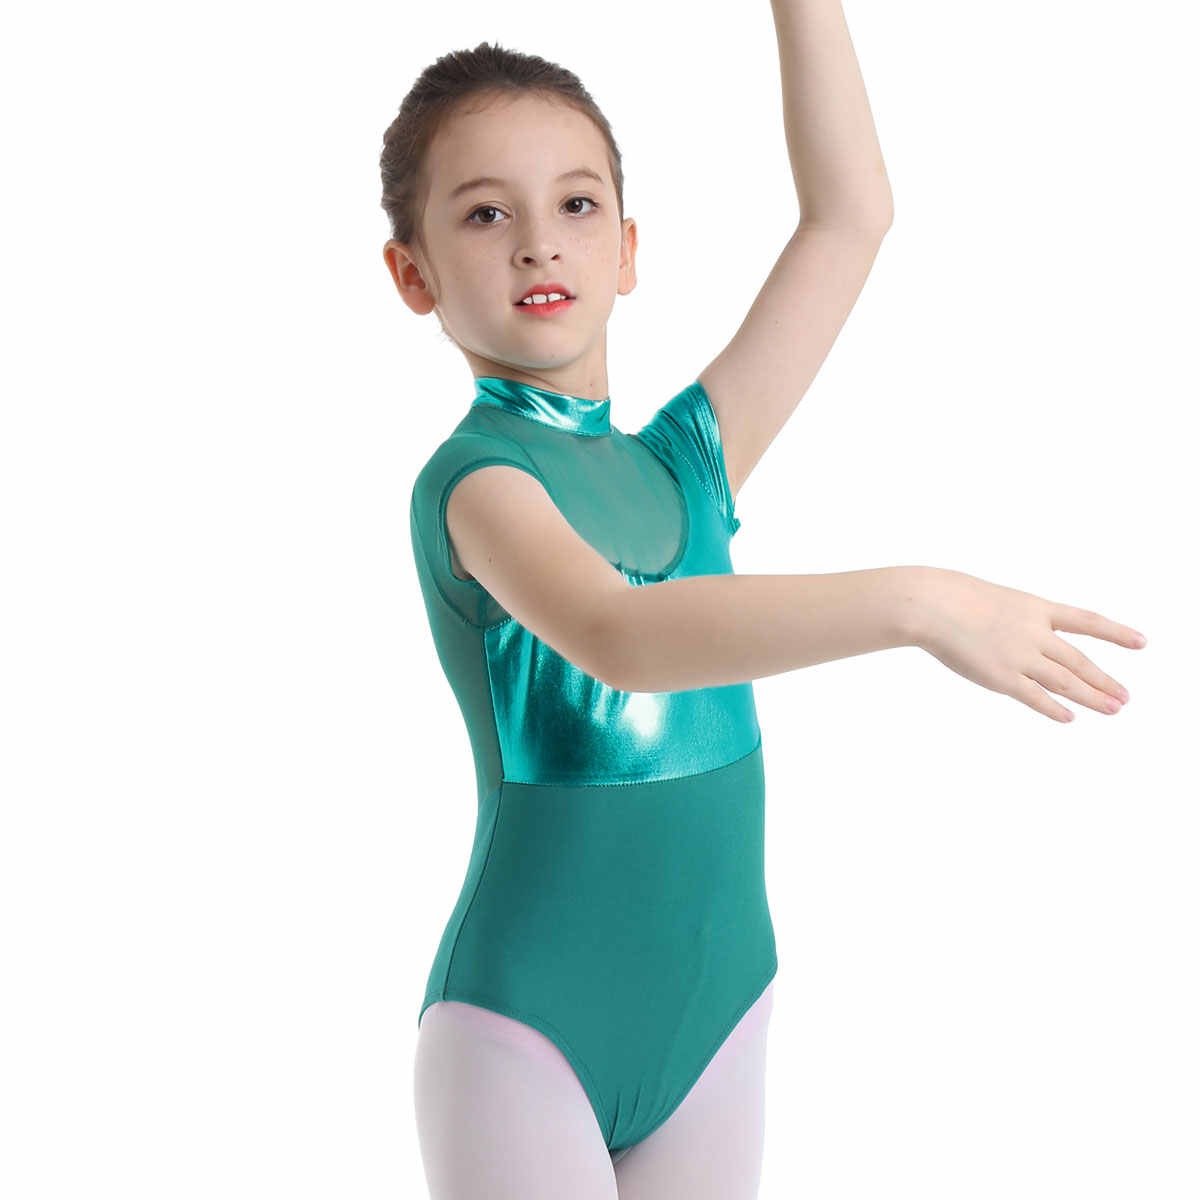 73bcdf32ece ... Kids Girls Gymnastic Swimsuit for Dancing Ballet Leotard Dance Leotard  Girls Mock Neck Shiny Metallic Mesh ...